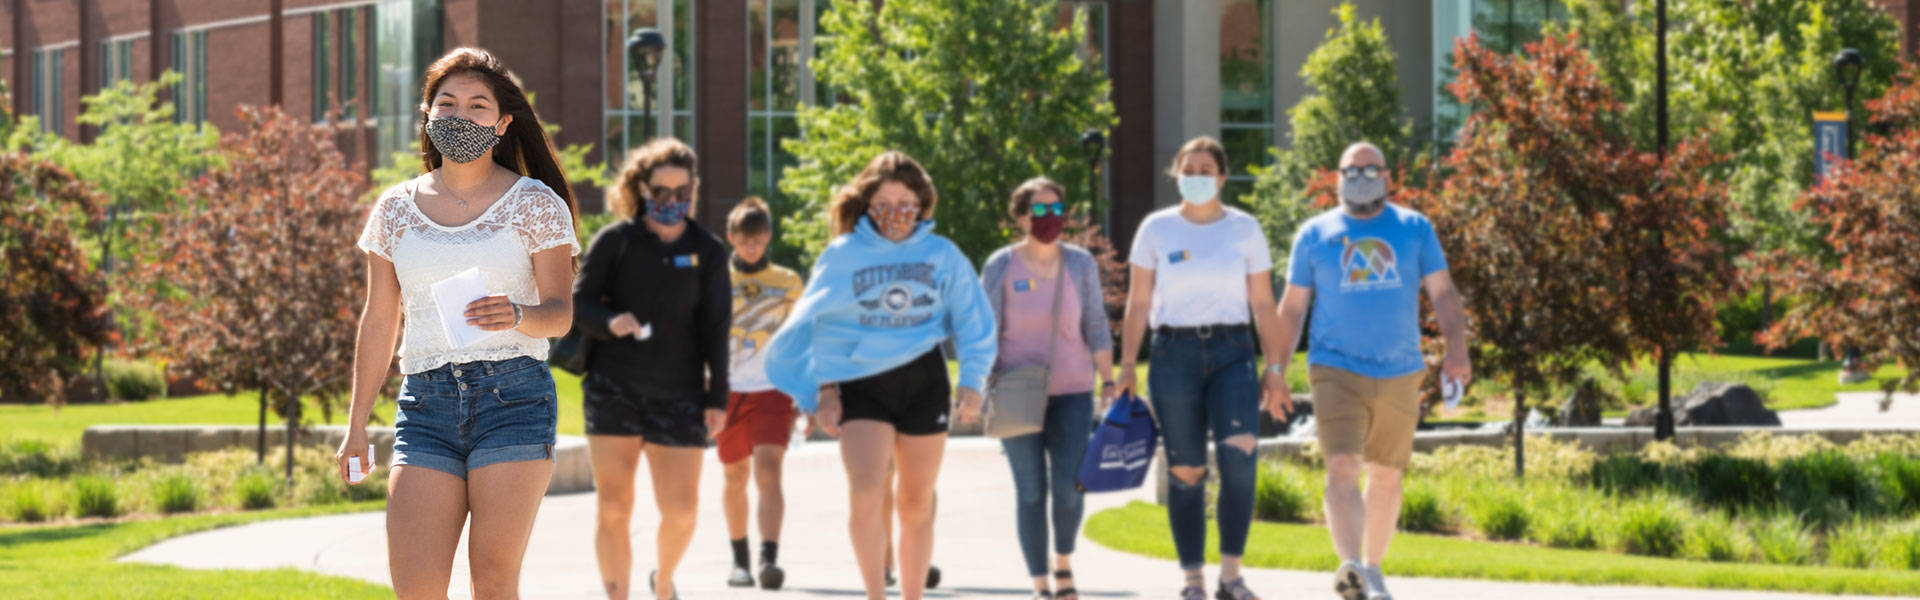 Student in mask leading campus tour on a bright sunny day.